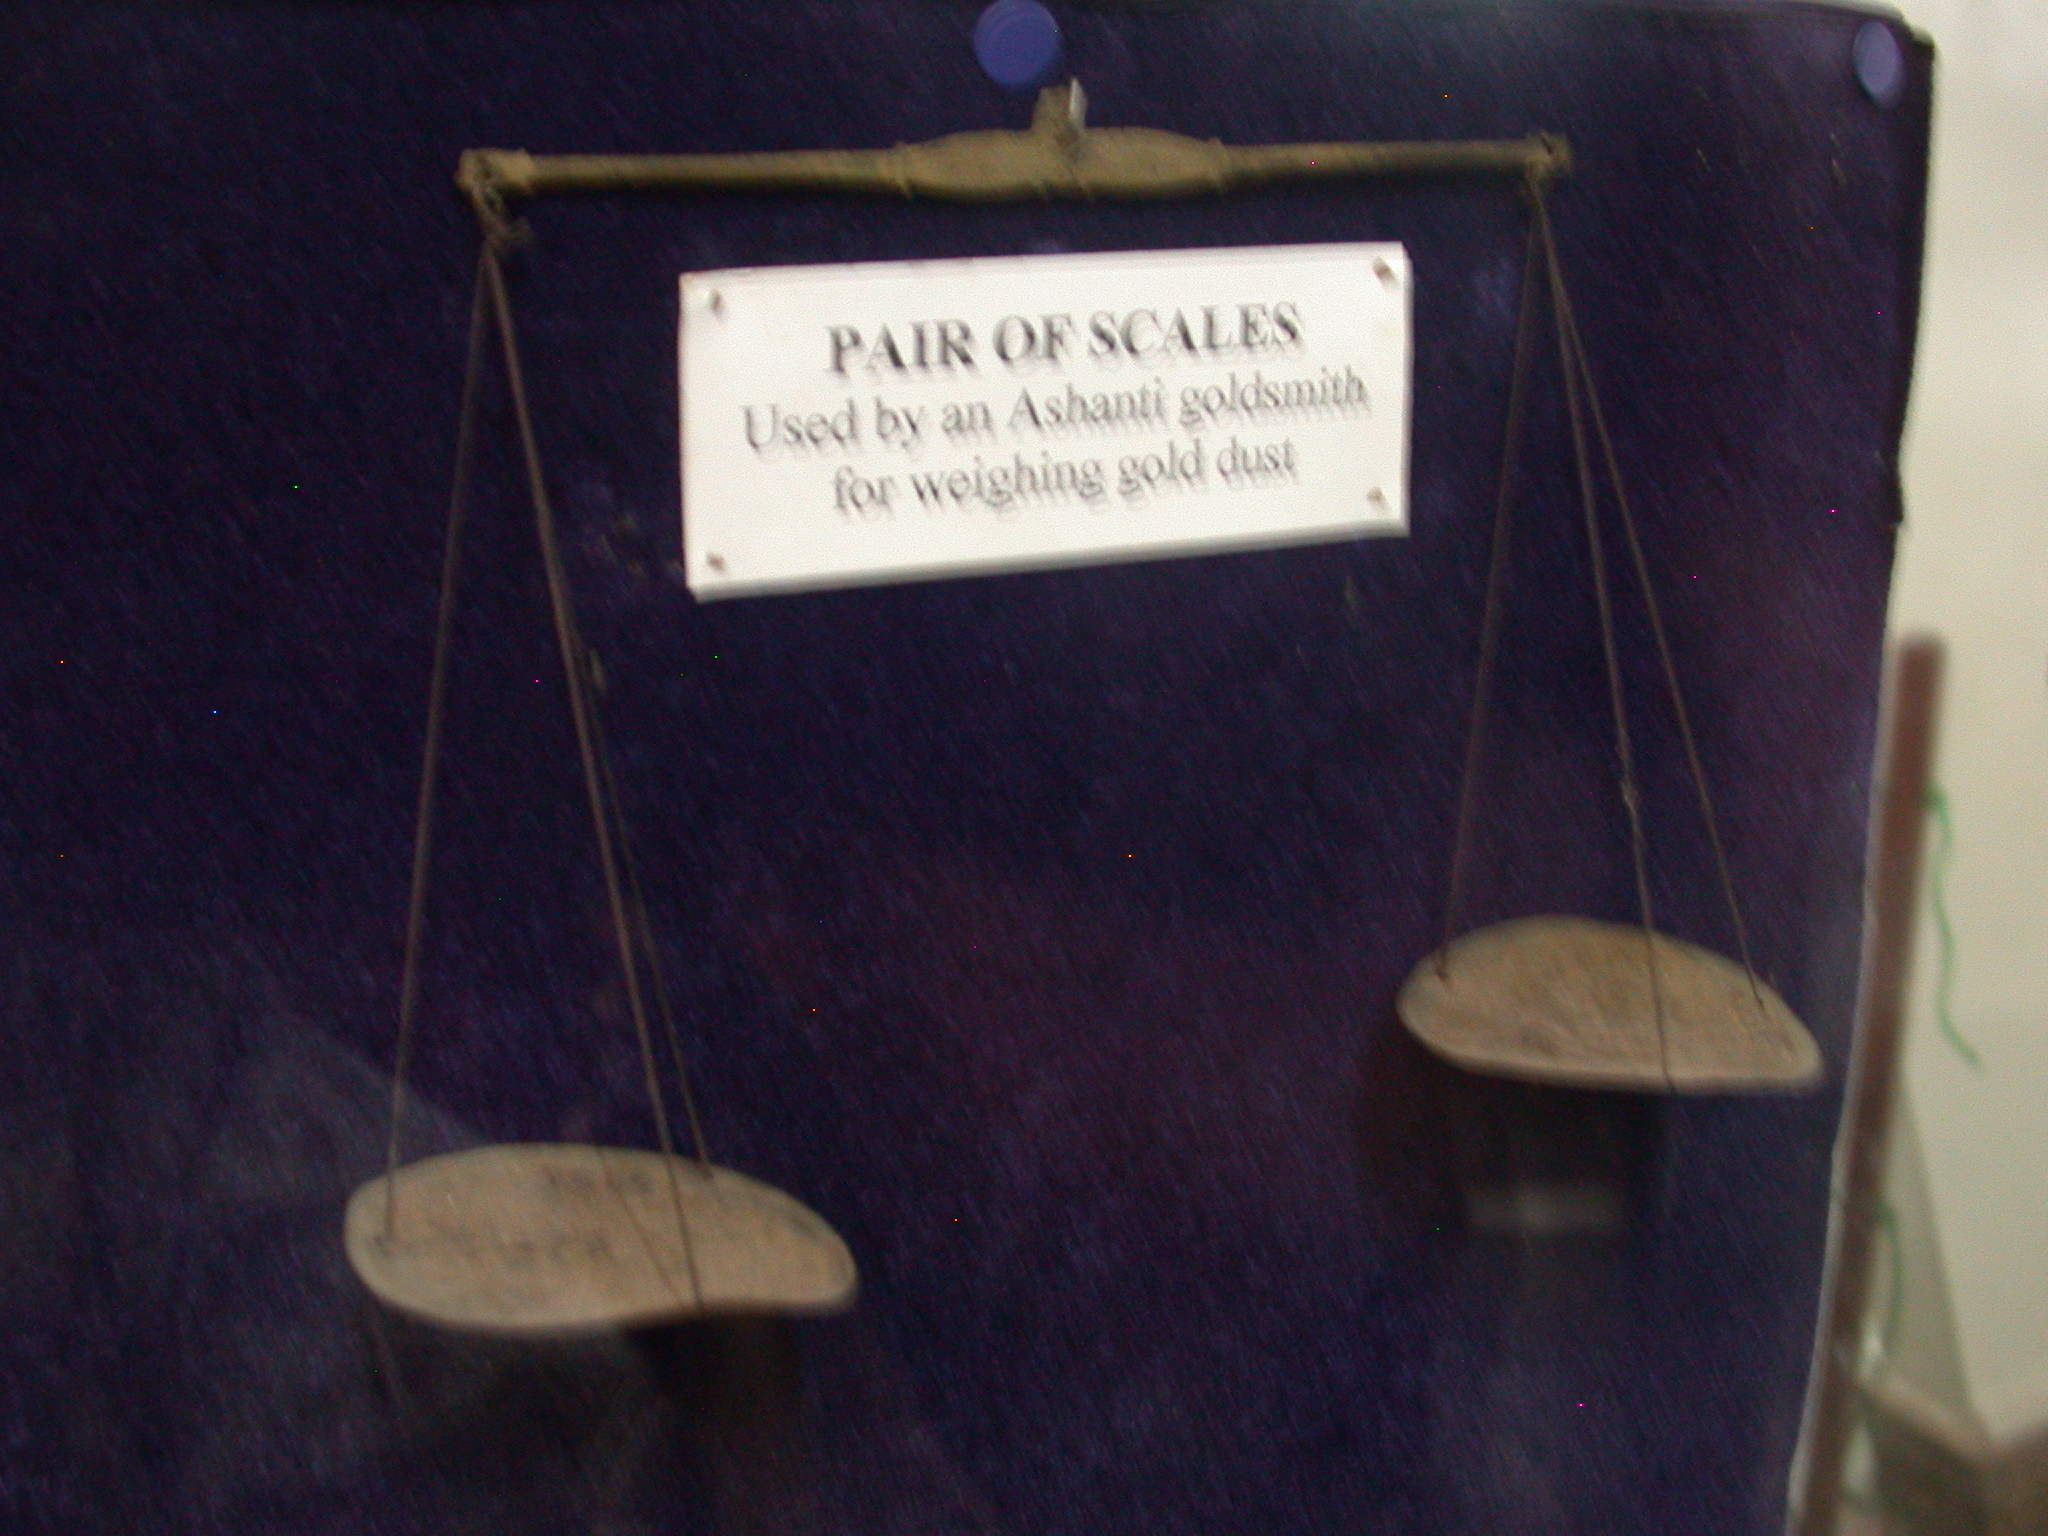 Scale Used by Ashanti Asante Goldsmith to Weigh Gold Dust, National Museum, Accra, Ghana